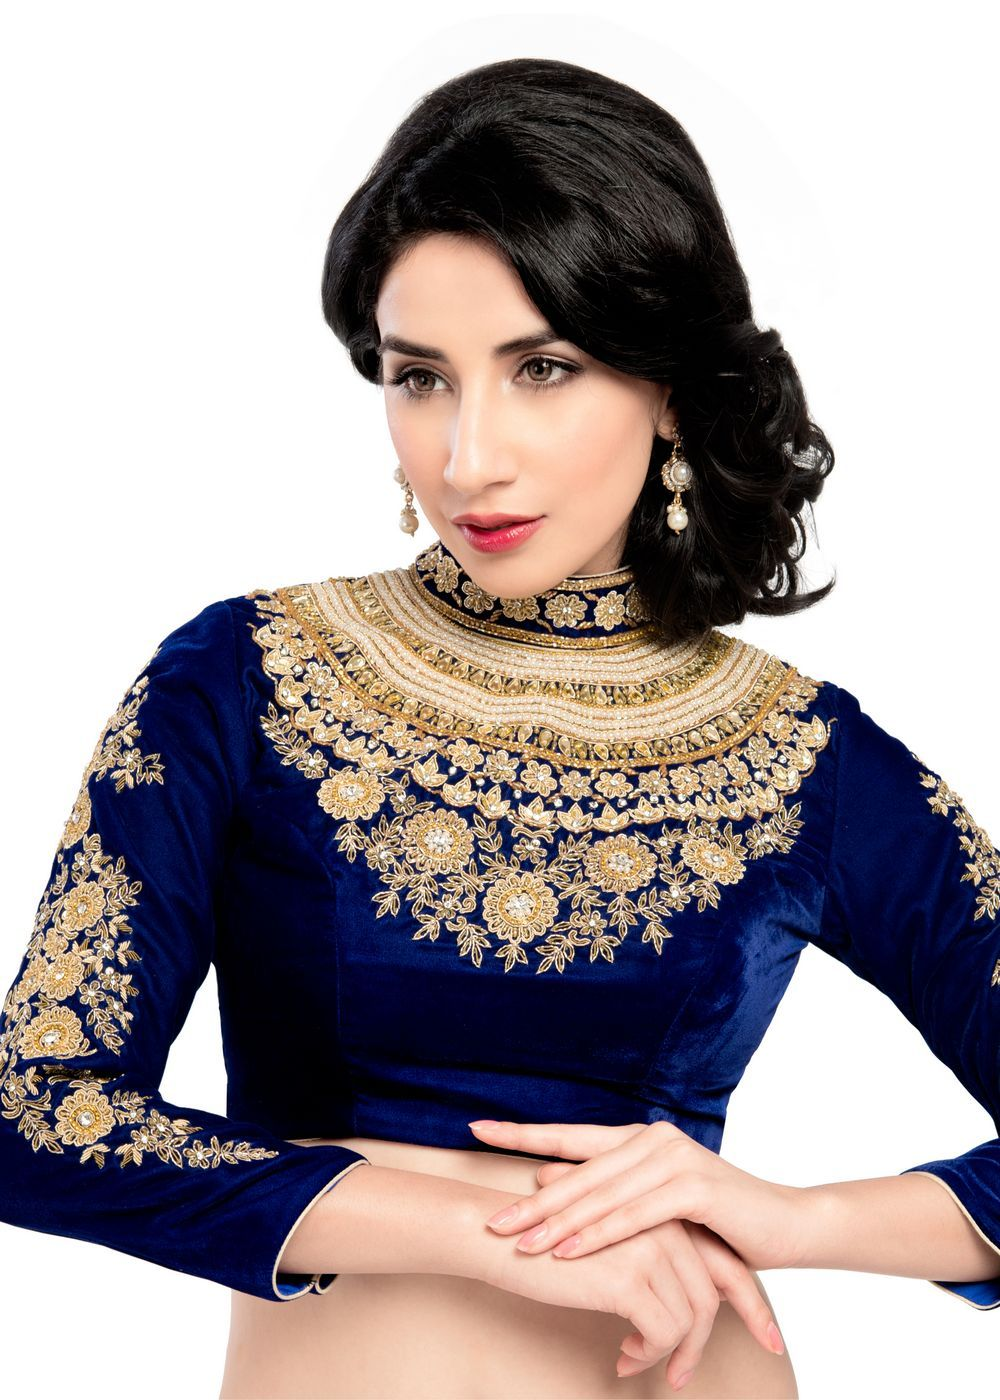 4b432039d53d2f Maharana Full Sleeve Royal Blue Velvet Saree Blouse Sari Choli - KP ...